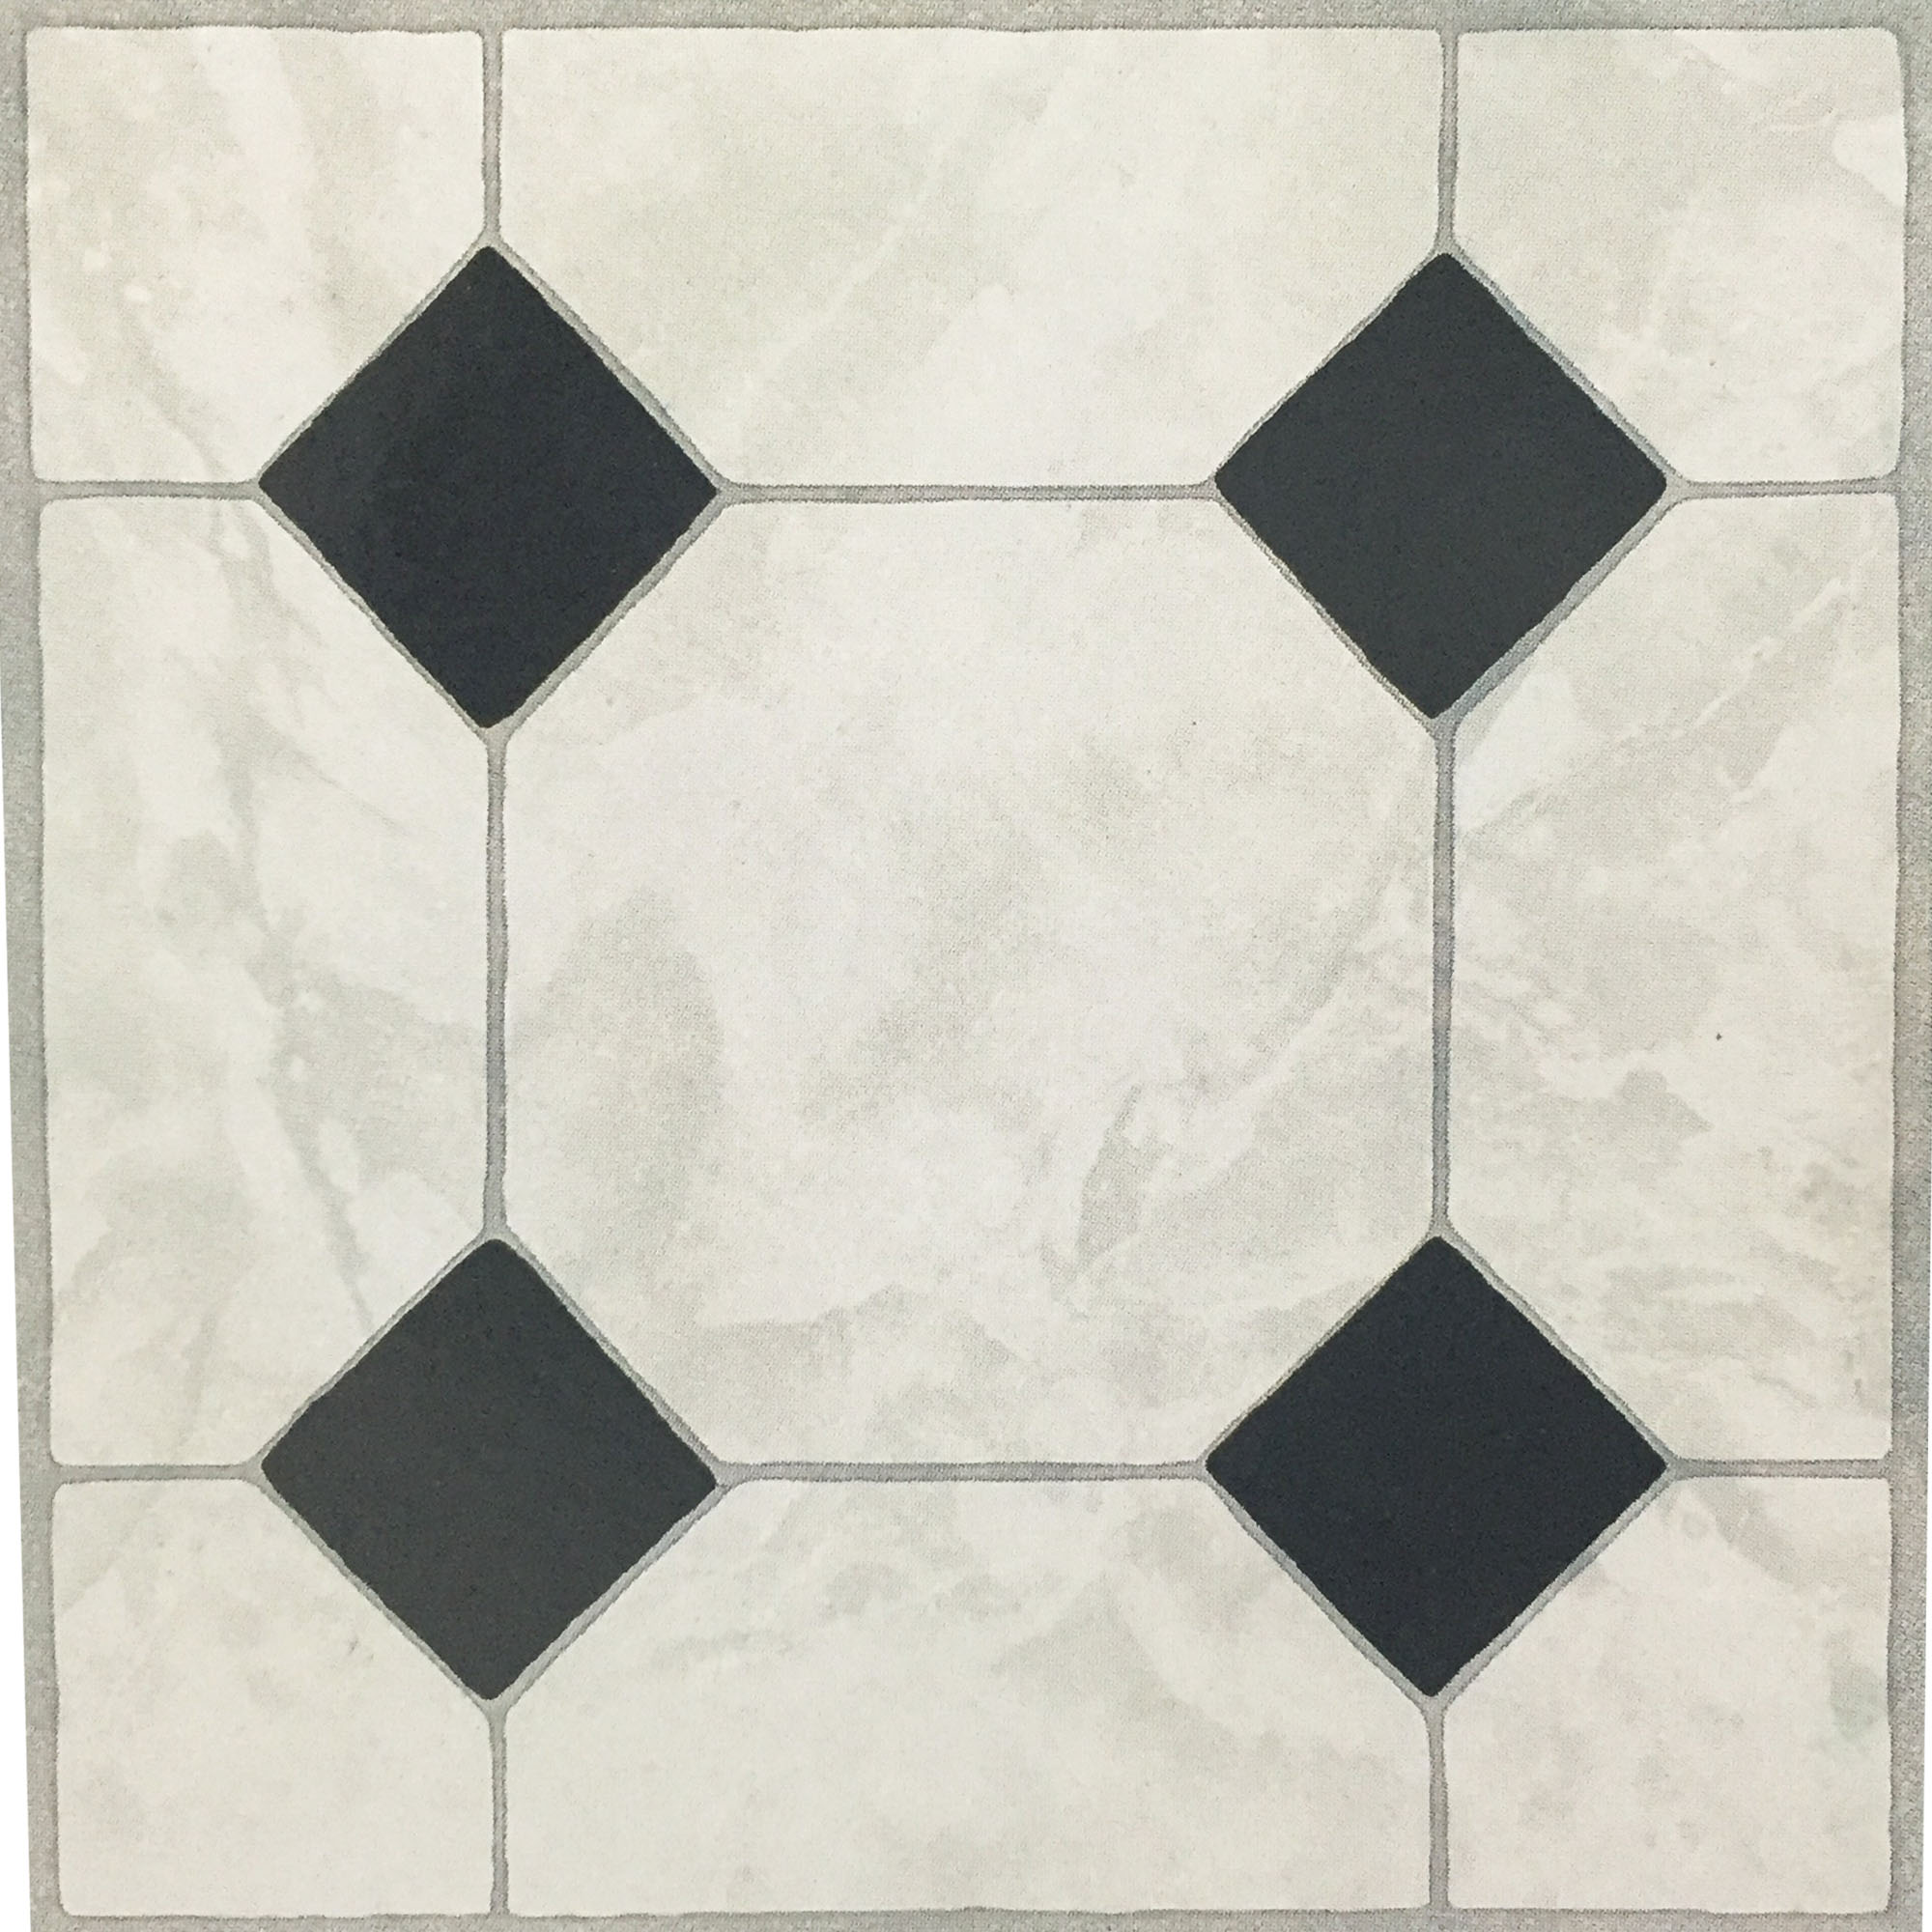 3 x ceramic effect vinyl floor tiles self adhesive for Vinyl floor tiles in bathroom